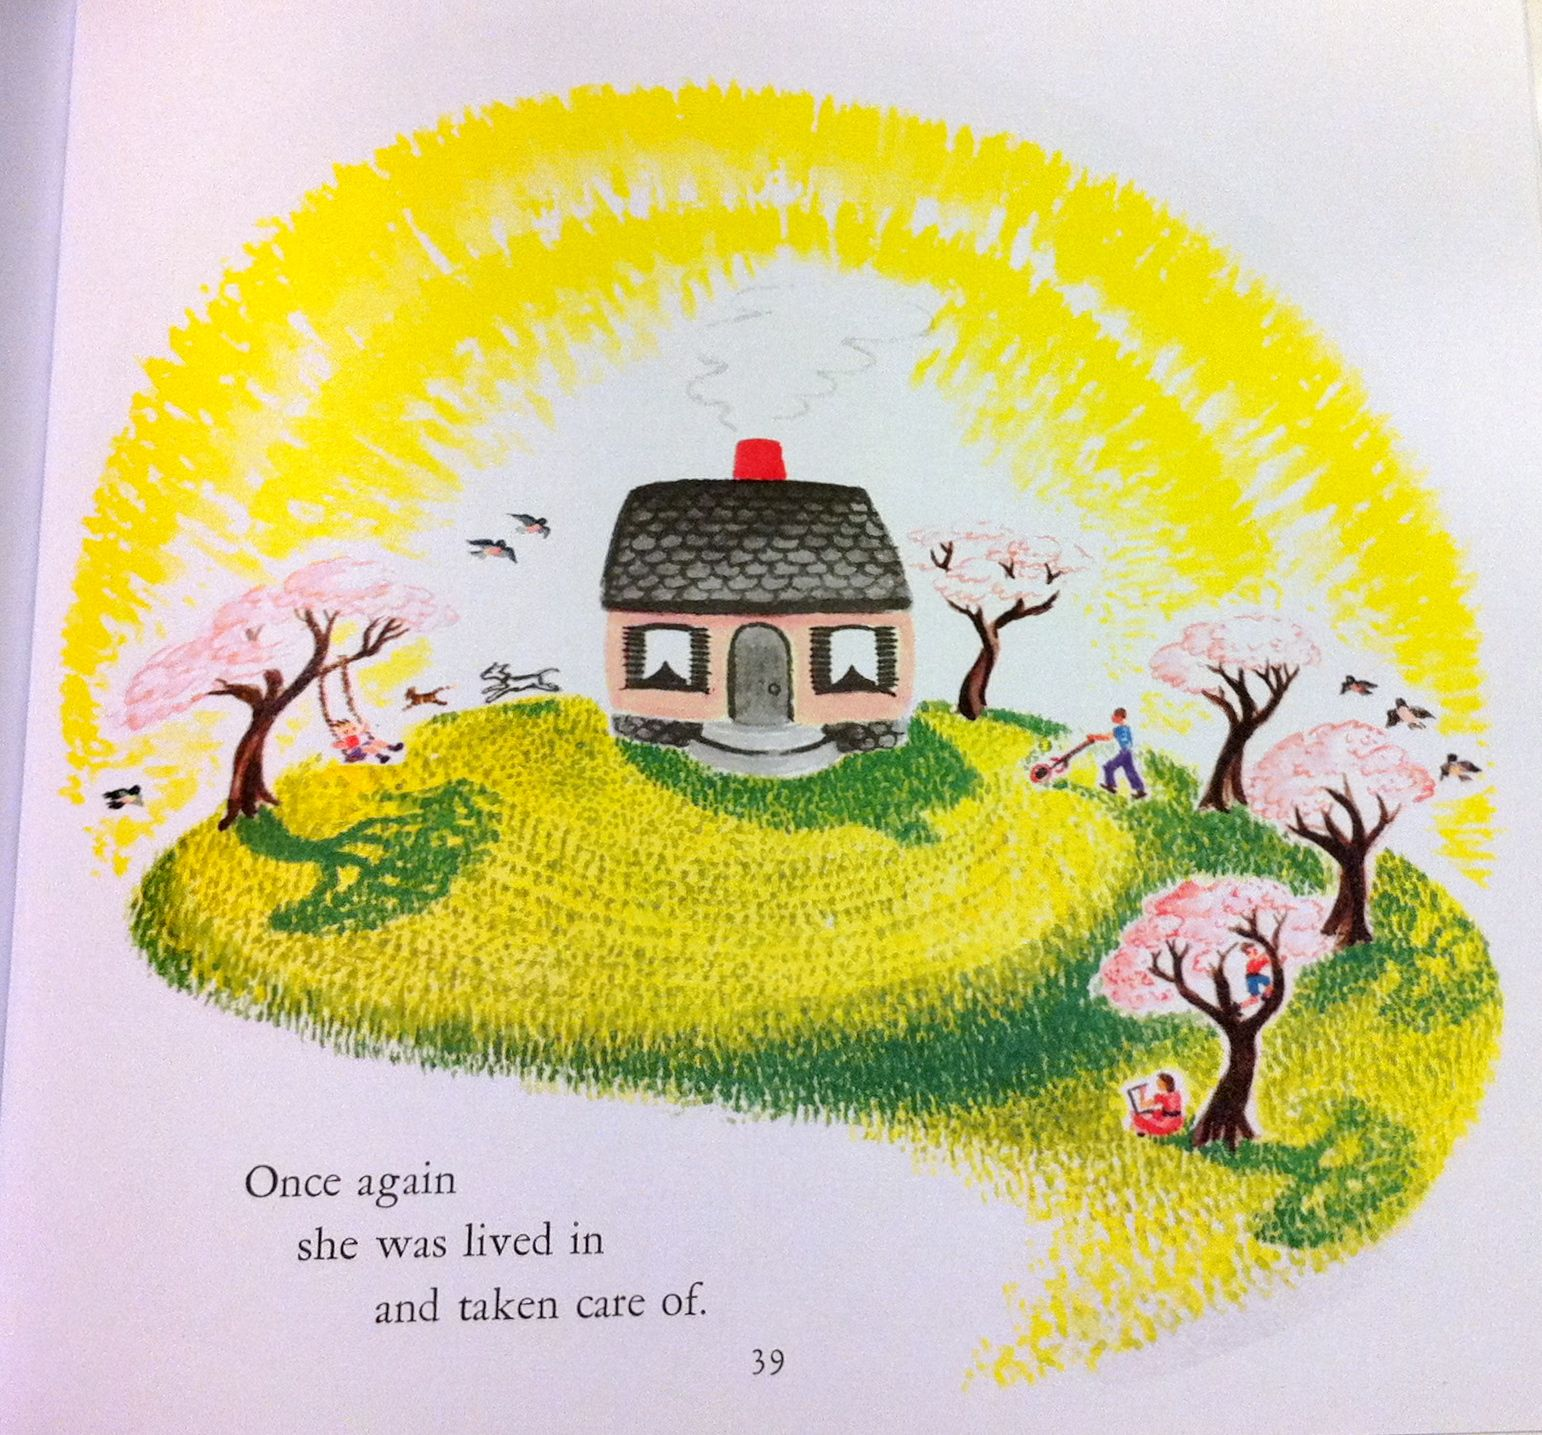 From The Little House By Virginia Lee Burton